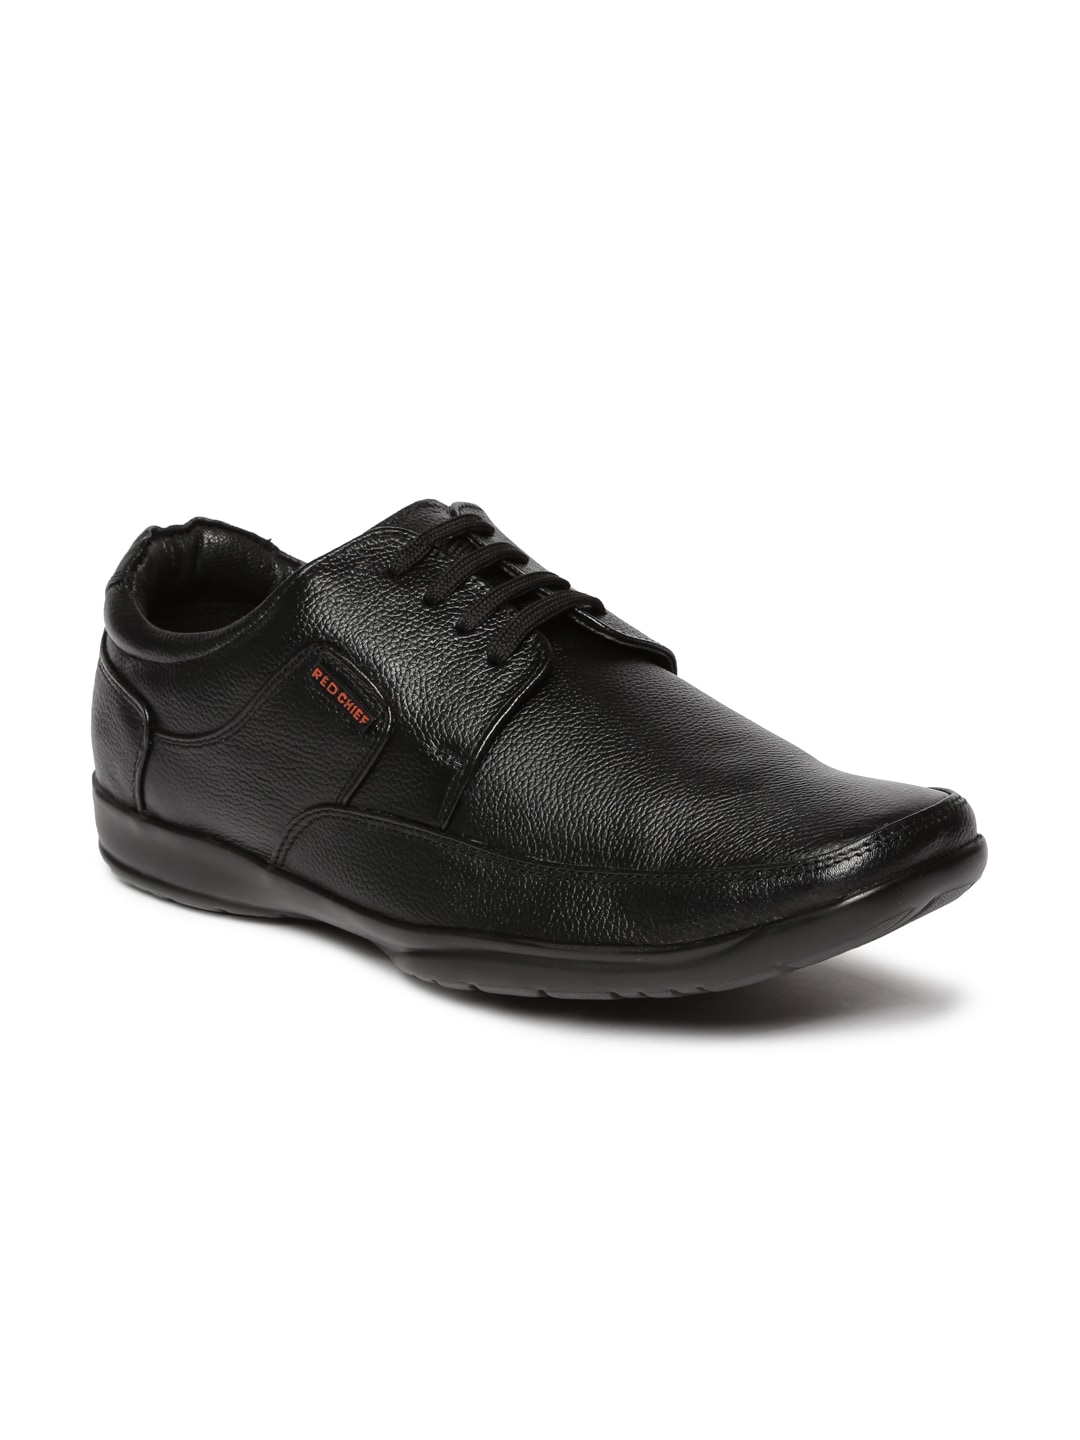 Red Chief Men Leather Textured Formal Shoes image